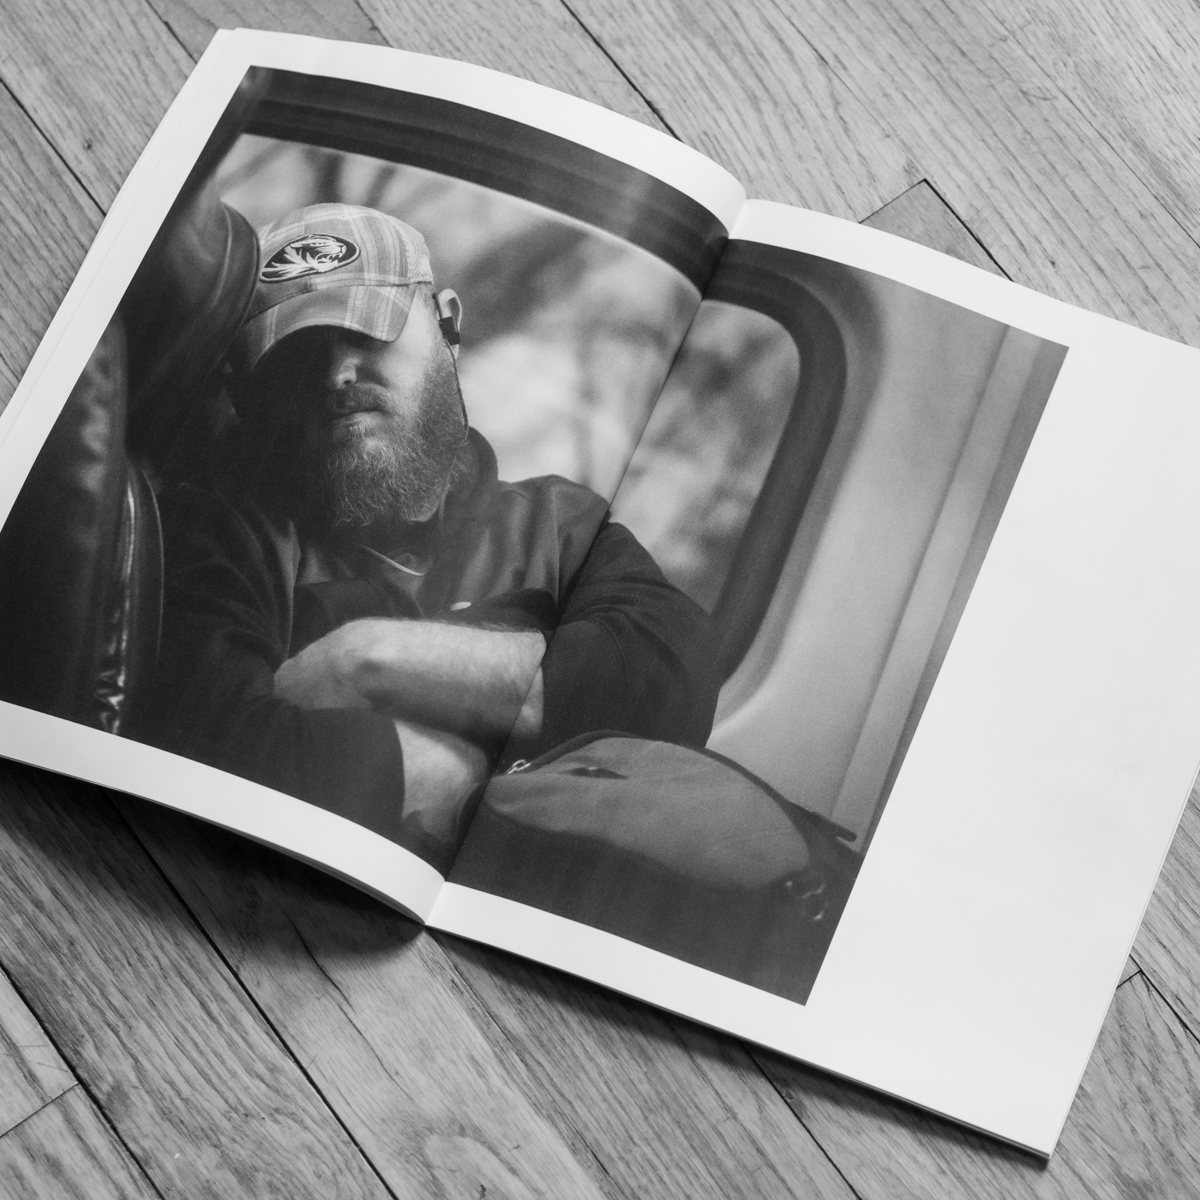 Book - i sleep, i dream - photography by Jamie Templeton.